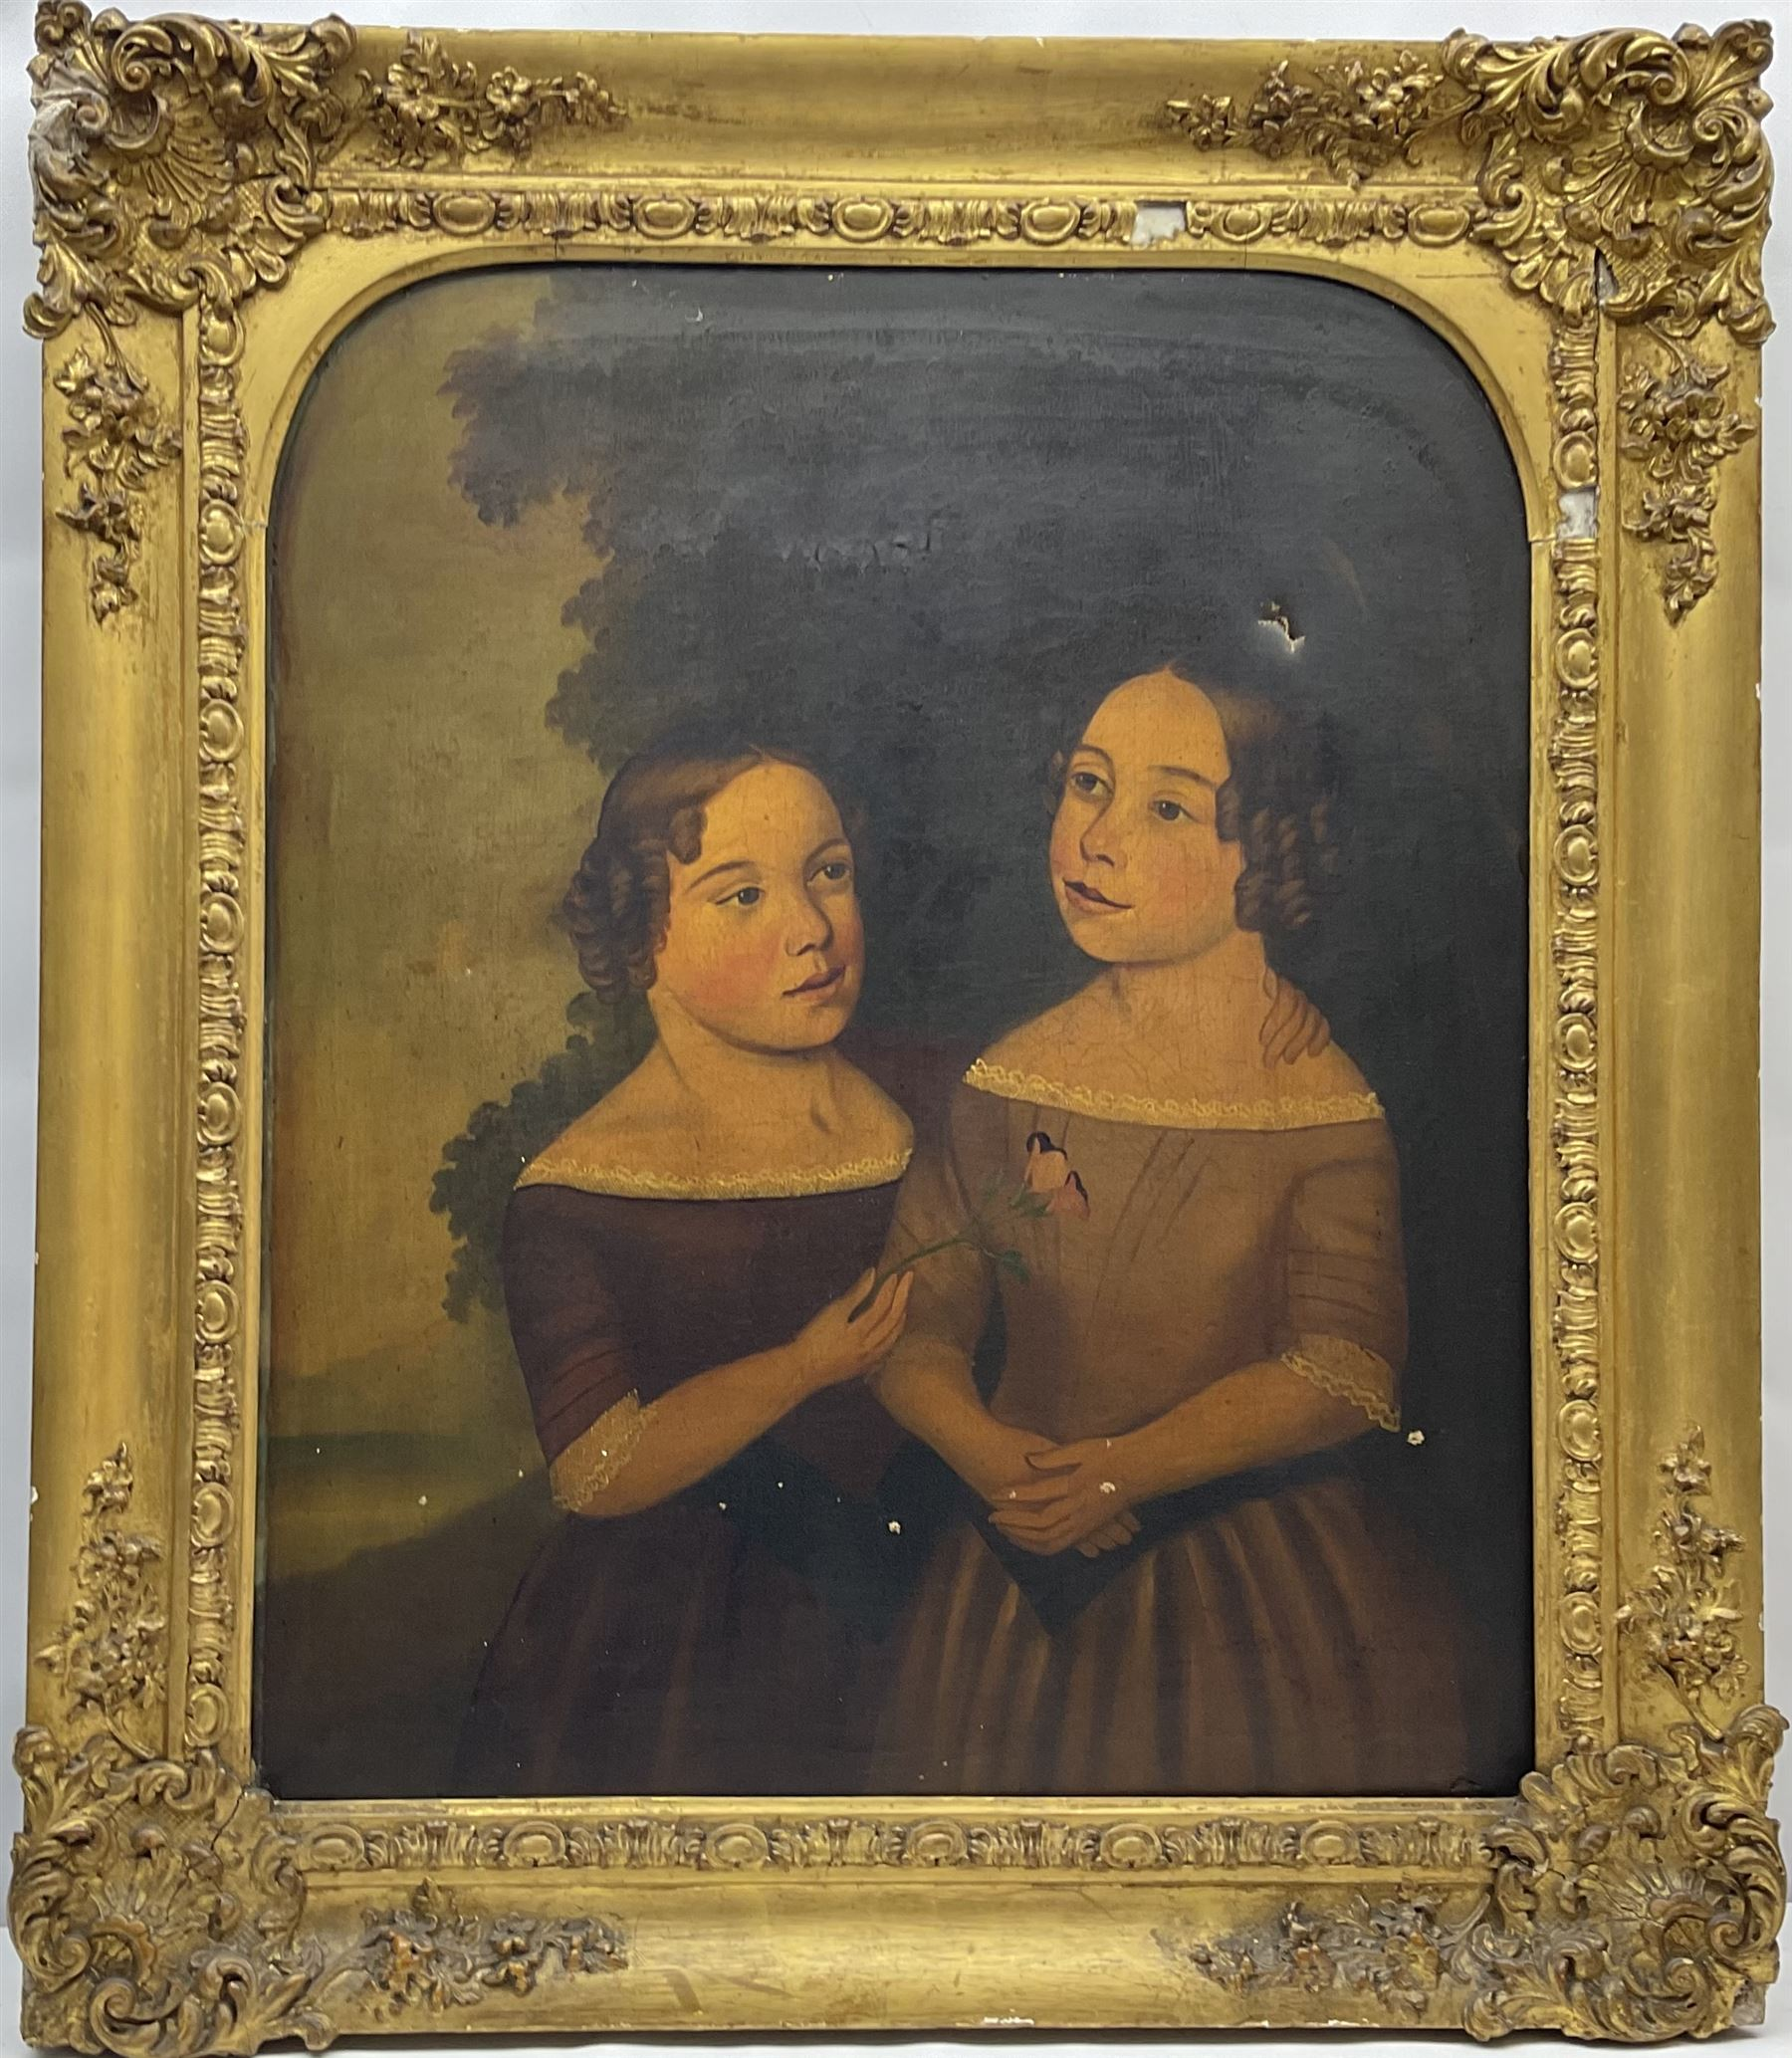 English Primitive School (Early/mid 19th century): Portrait of Two Girls - Image 2 of 4